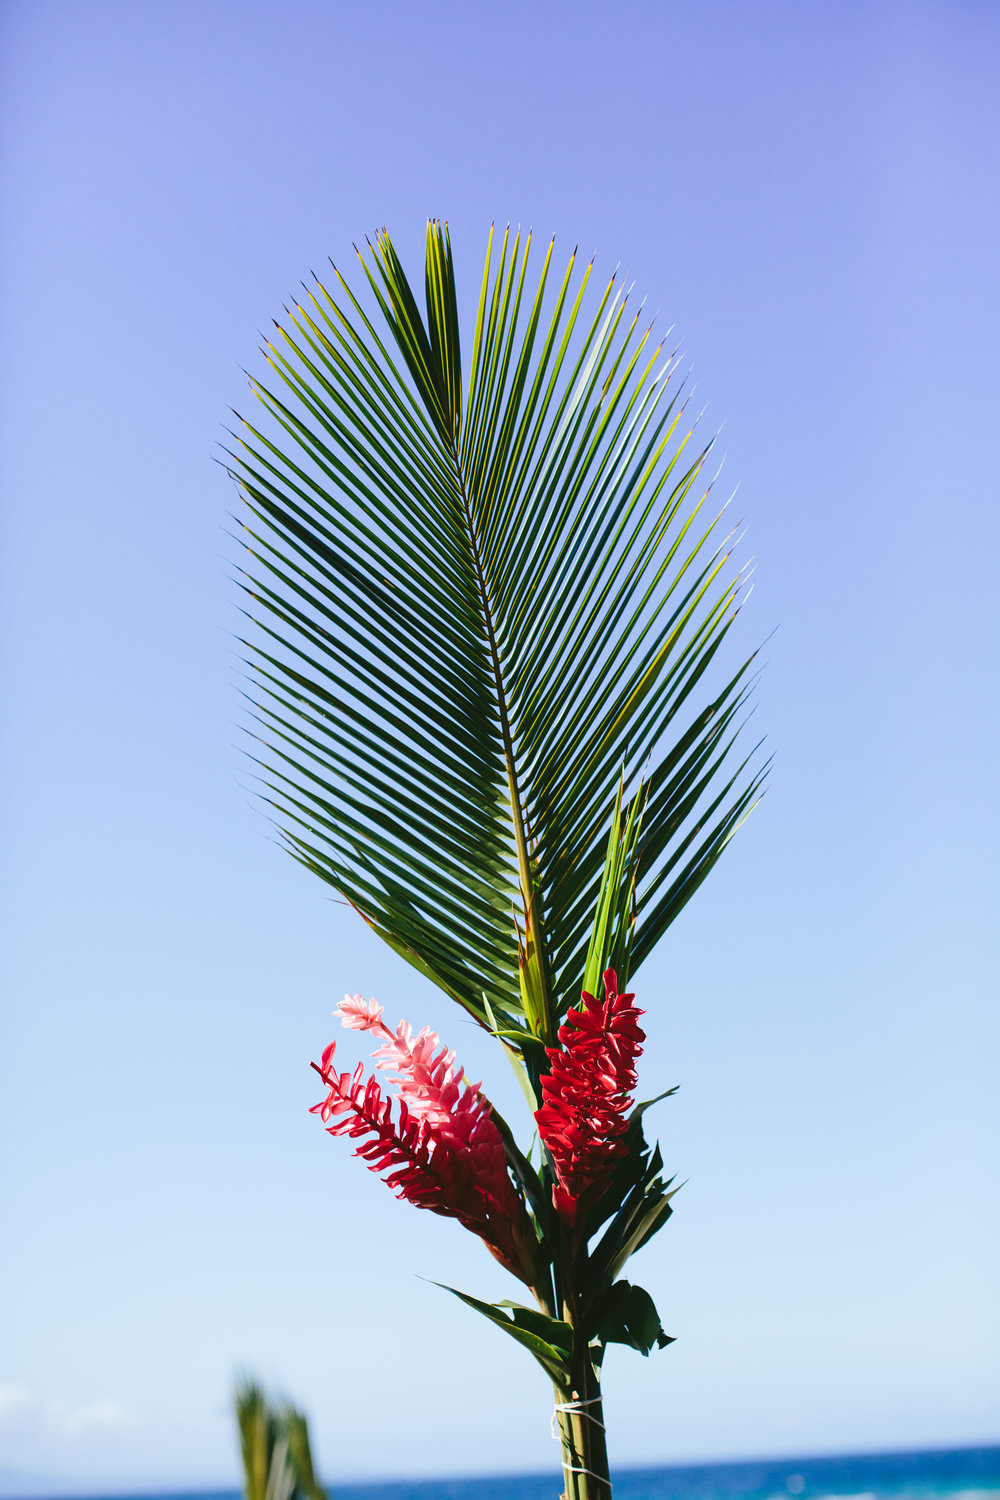 Palm and Red Ginger Aisle - Fiji Wedding Elopement - The Remote Resort Fiji Islands - Aisle decorations